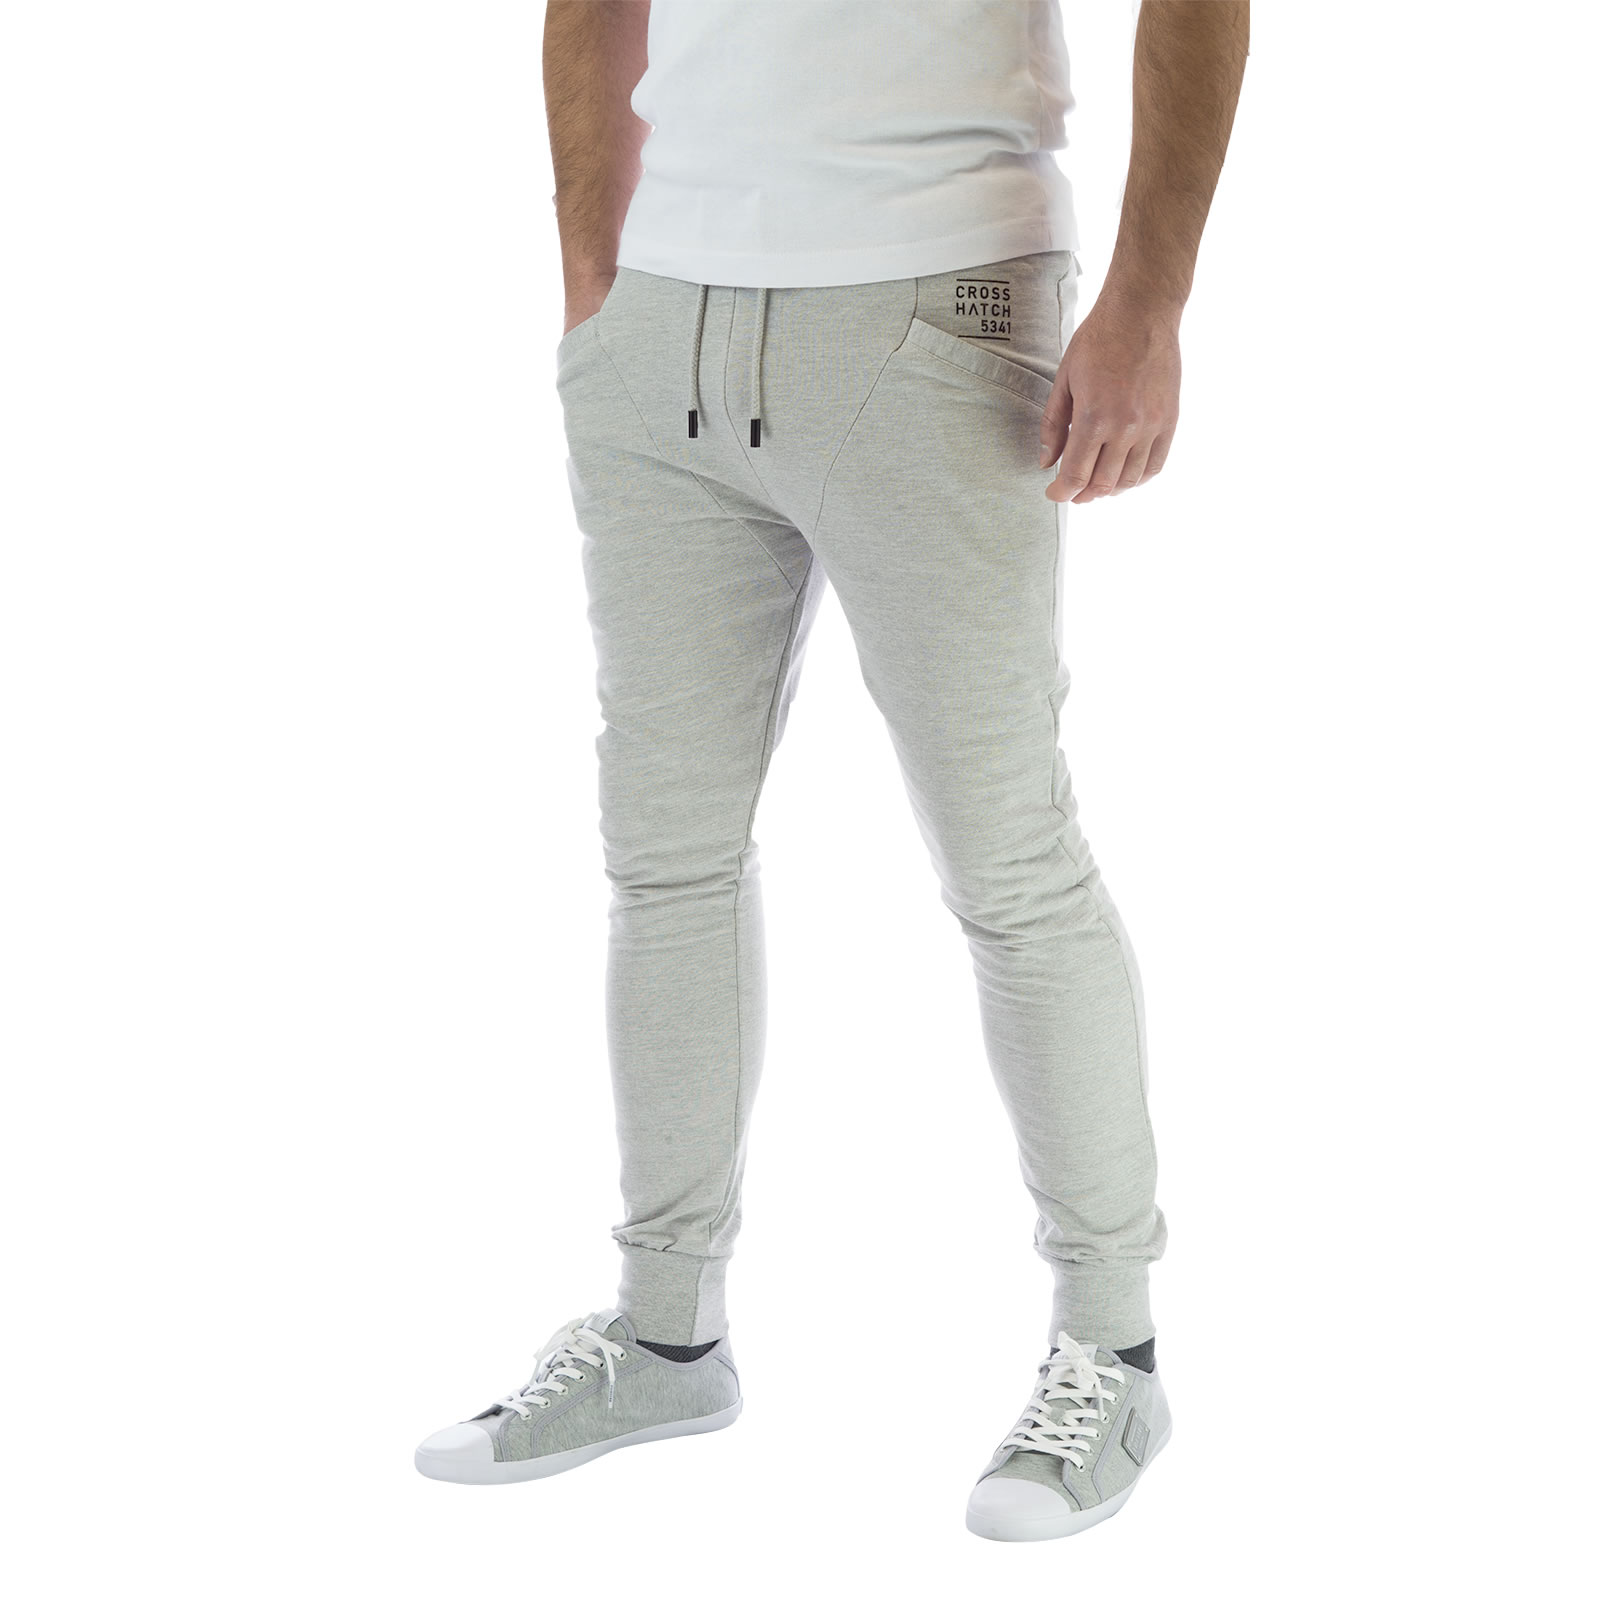 Shop online for Men's Joggers & Sweatpants at truemfilesb5q.gq Find a tapered fit perfect for casual wear. Free Shipping. Free Returns. All the time. DIESEL® Krooley Skinny Slouchy Jogger Jeans (M) Was: $ Now: $ 30% off. Nordstrom Men's Shop Poplin Lounge Pants. $ (26) Topman Side Stripe Skinny Fit Joggers.